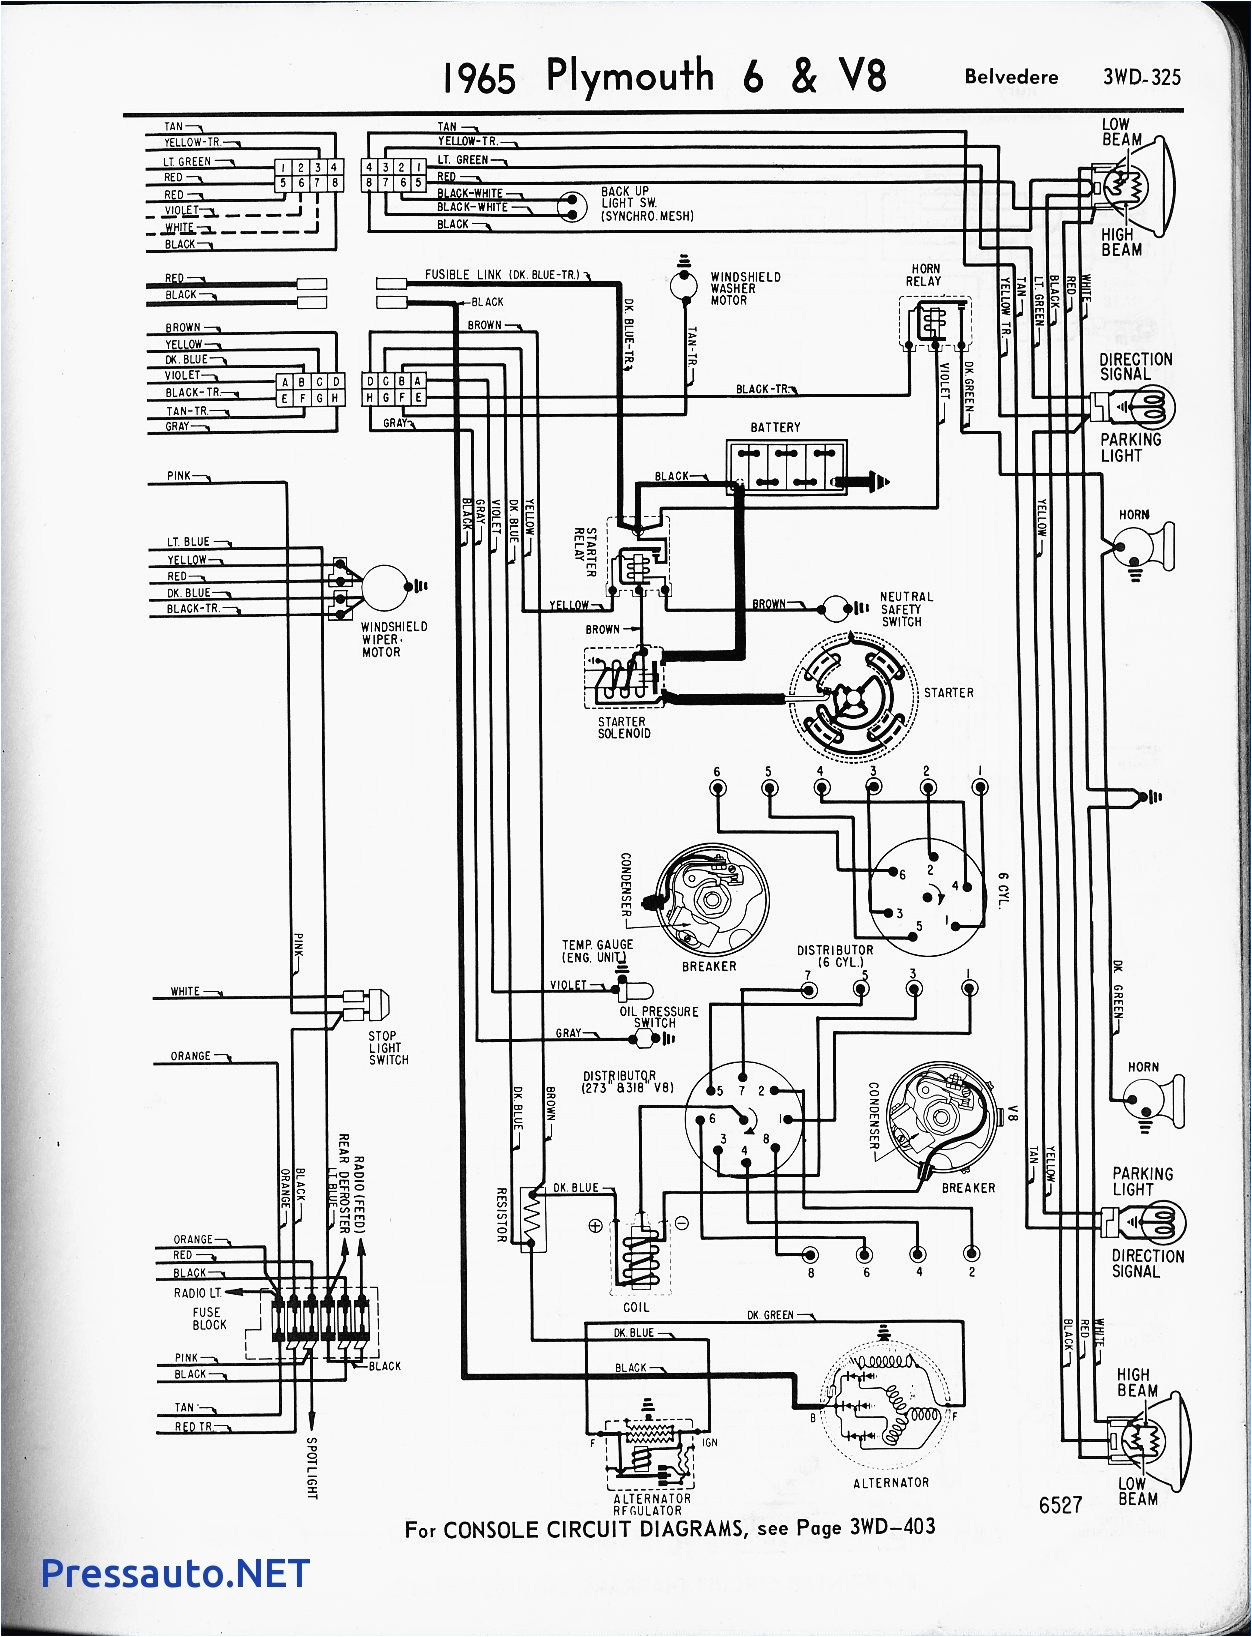 vintage air trinary switch wiring diagram beautiful vintage air trinary switch wiring diagram rate diagram vintage air